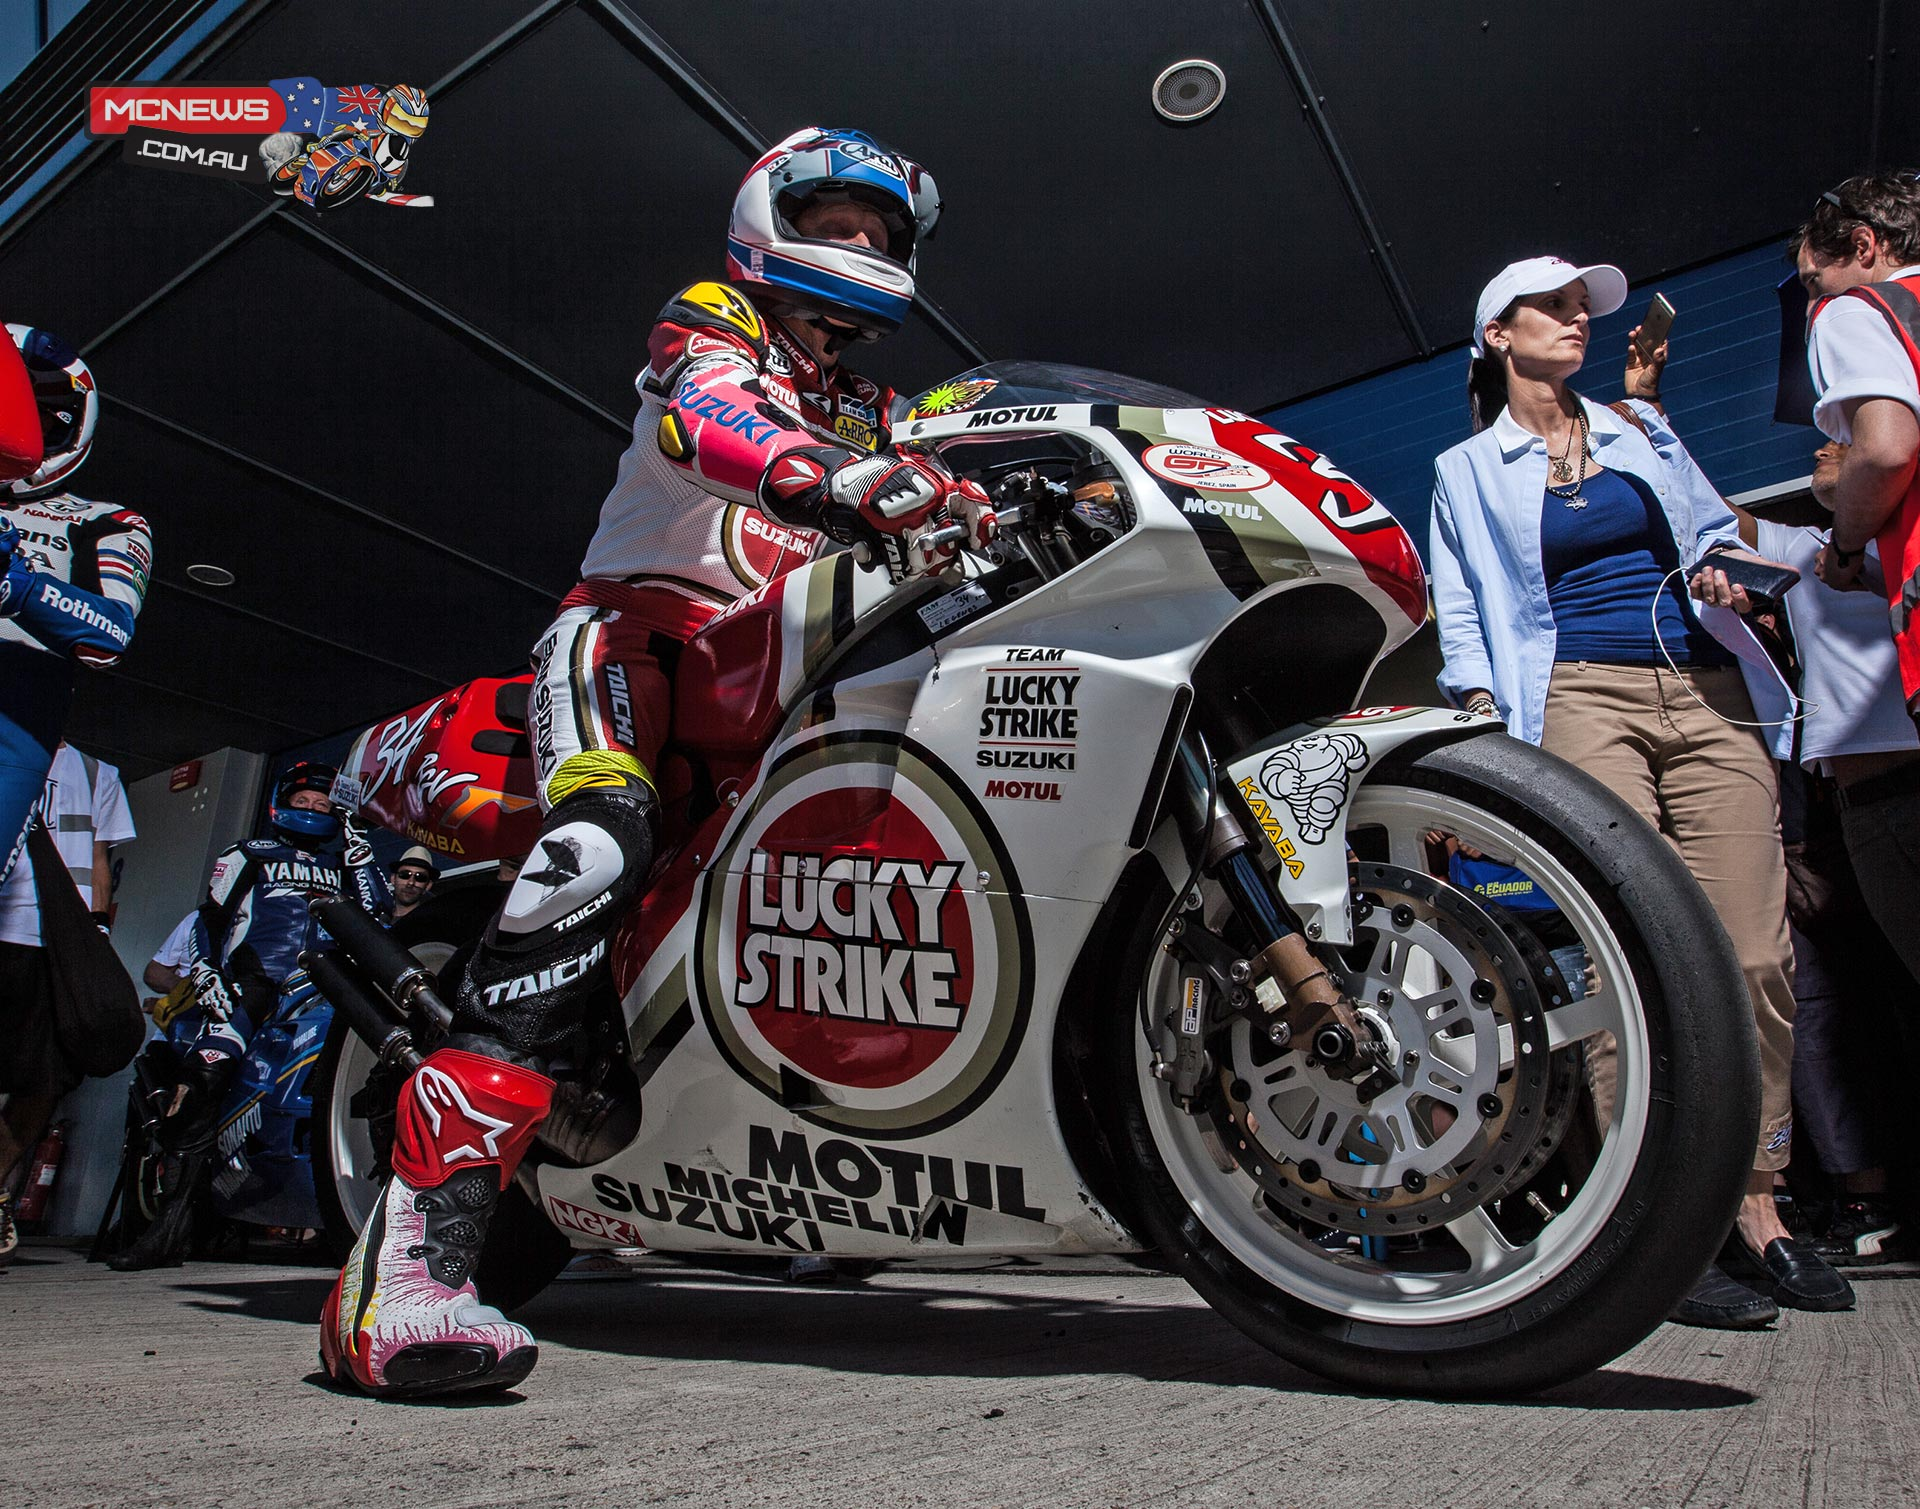 World GP Bike Legends 2015 - Kevin Schwantz